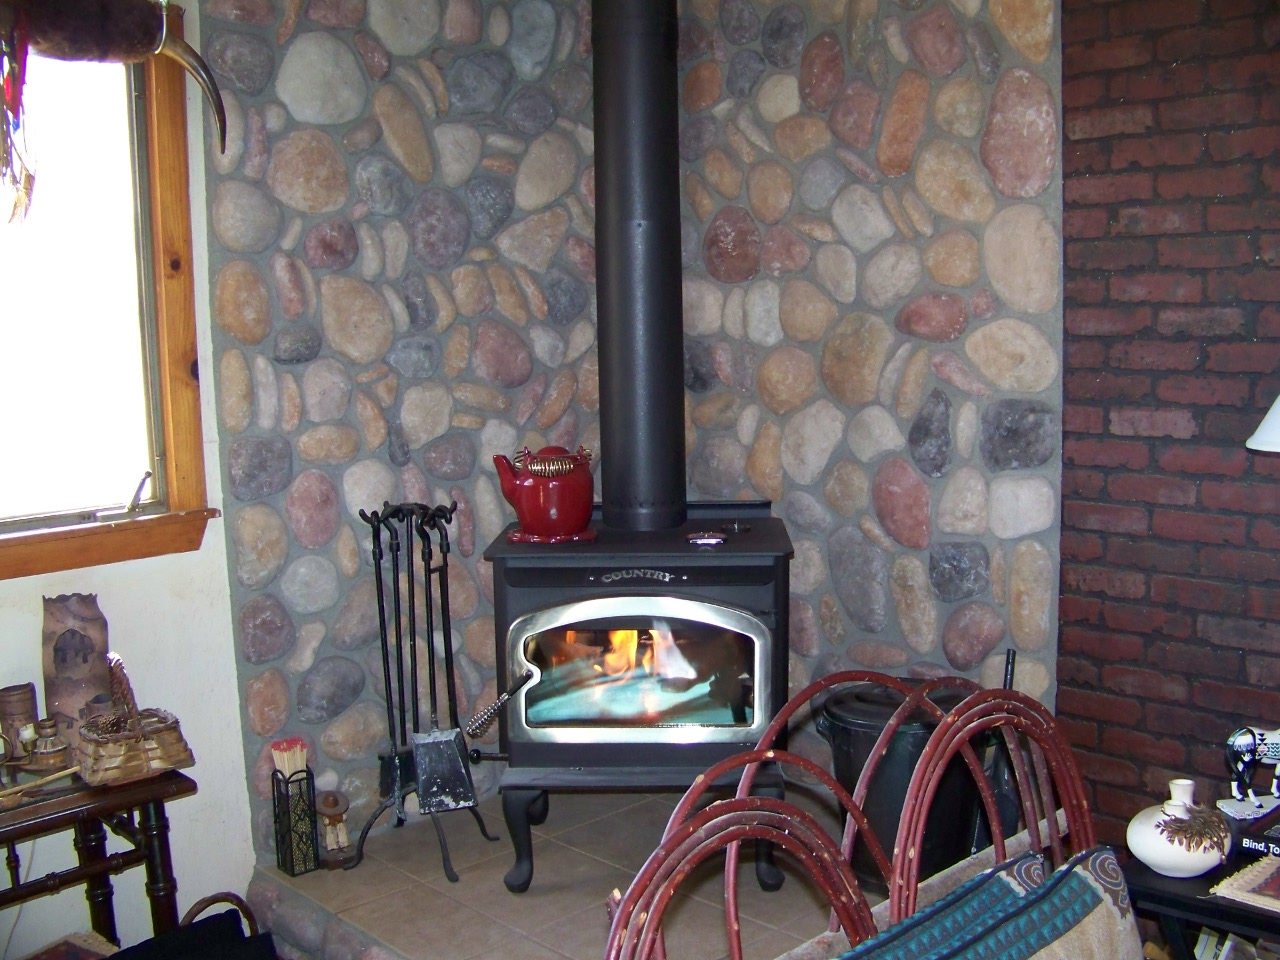 Wood Stove Heat Shield Ideas WB Designs - Wood Stove Wall Heat Shield WB Designs